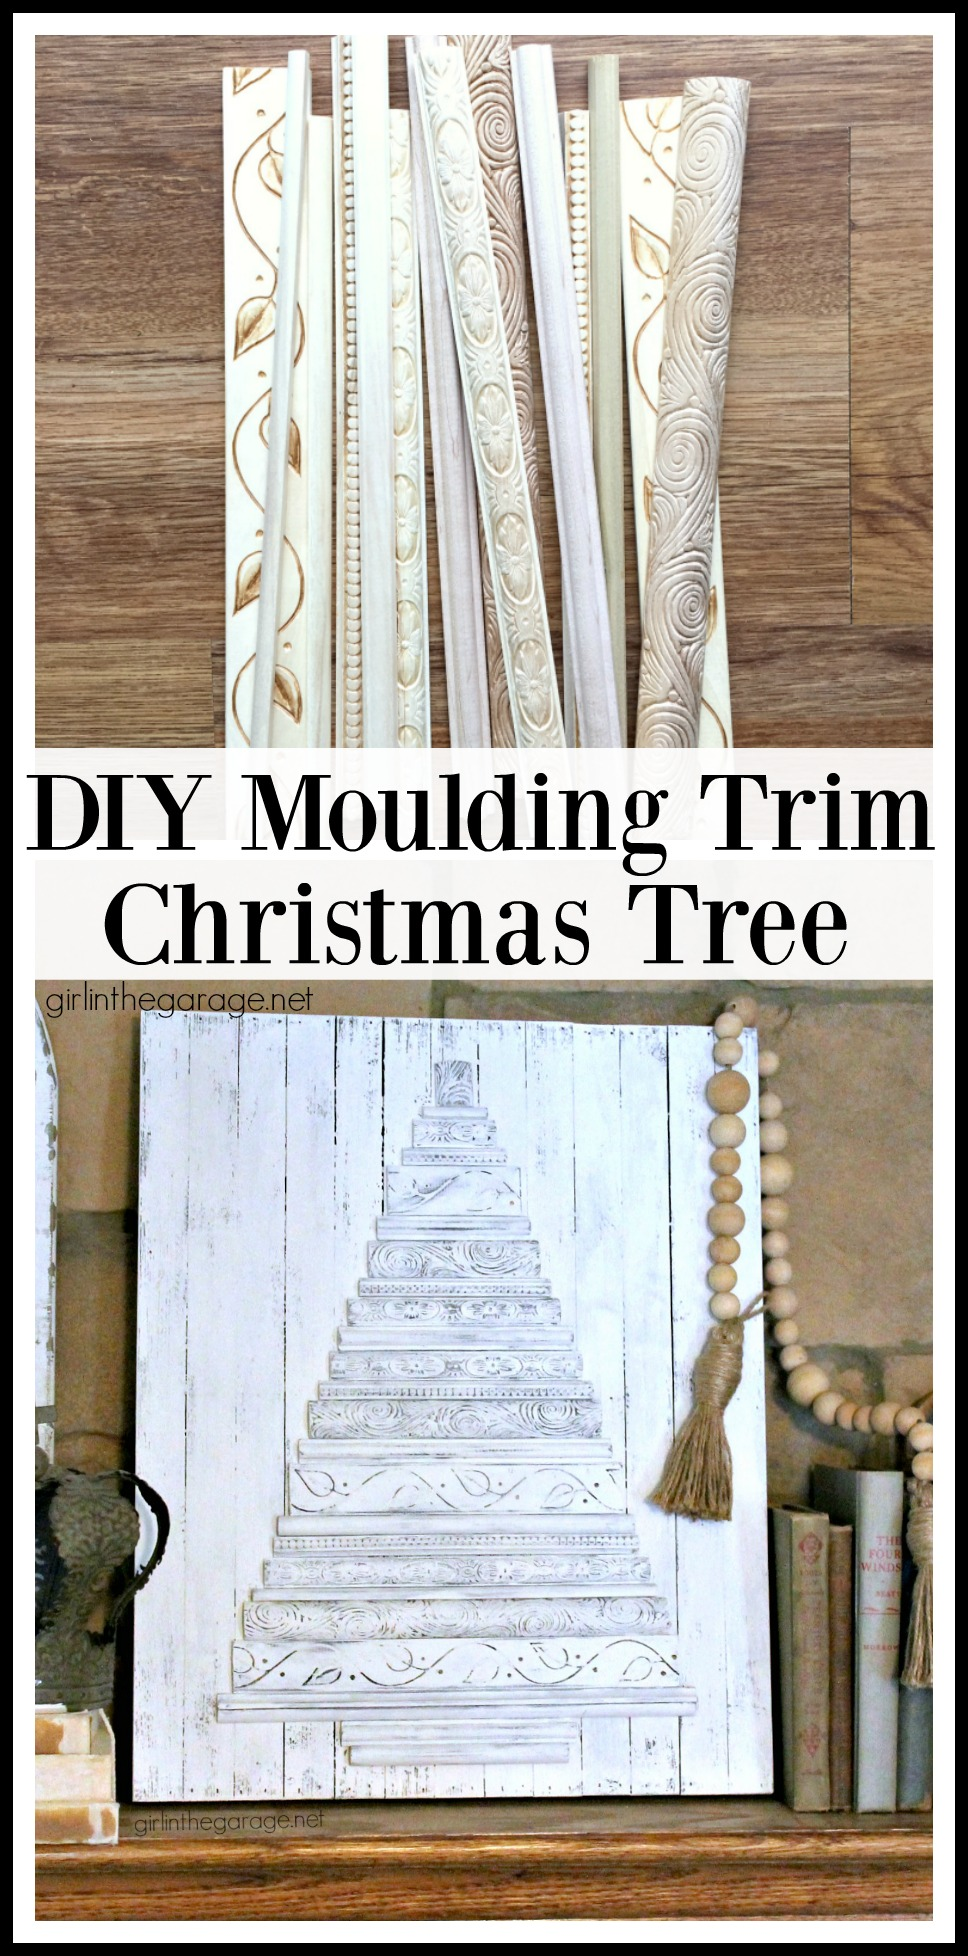 DIY Moulding Trim Christmas Tree - tutorial by Girl in the Garage